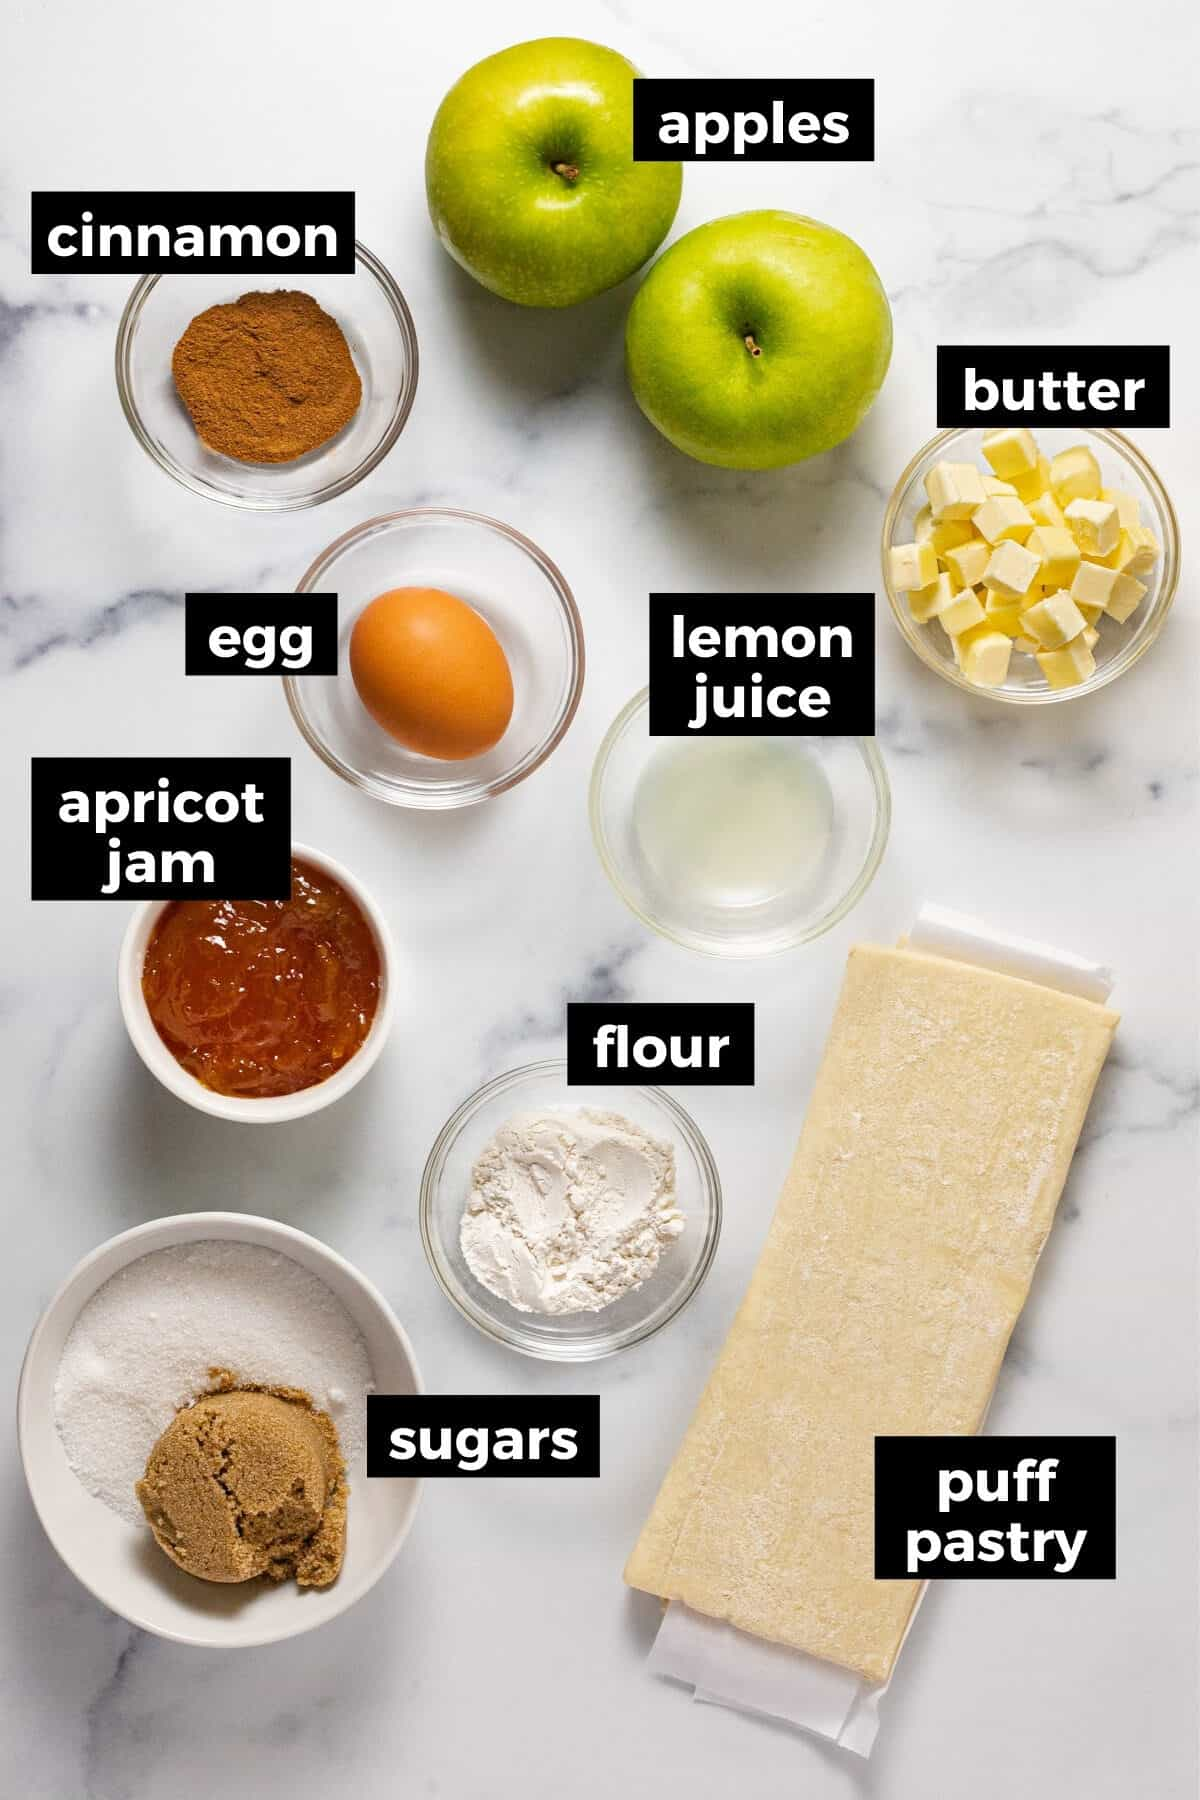 White marble counter top with ingredients to make apple pie with puff pastry